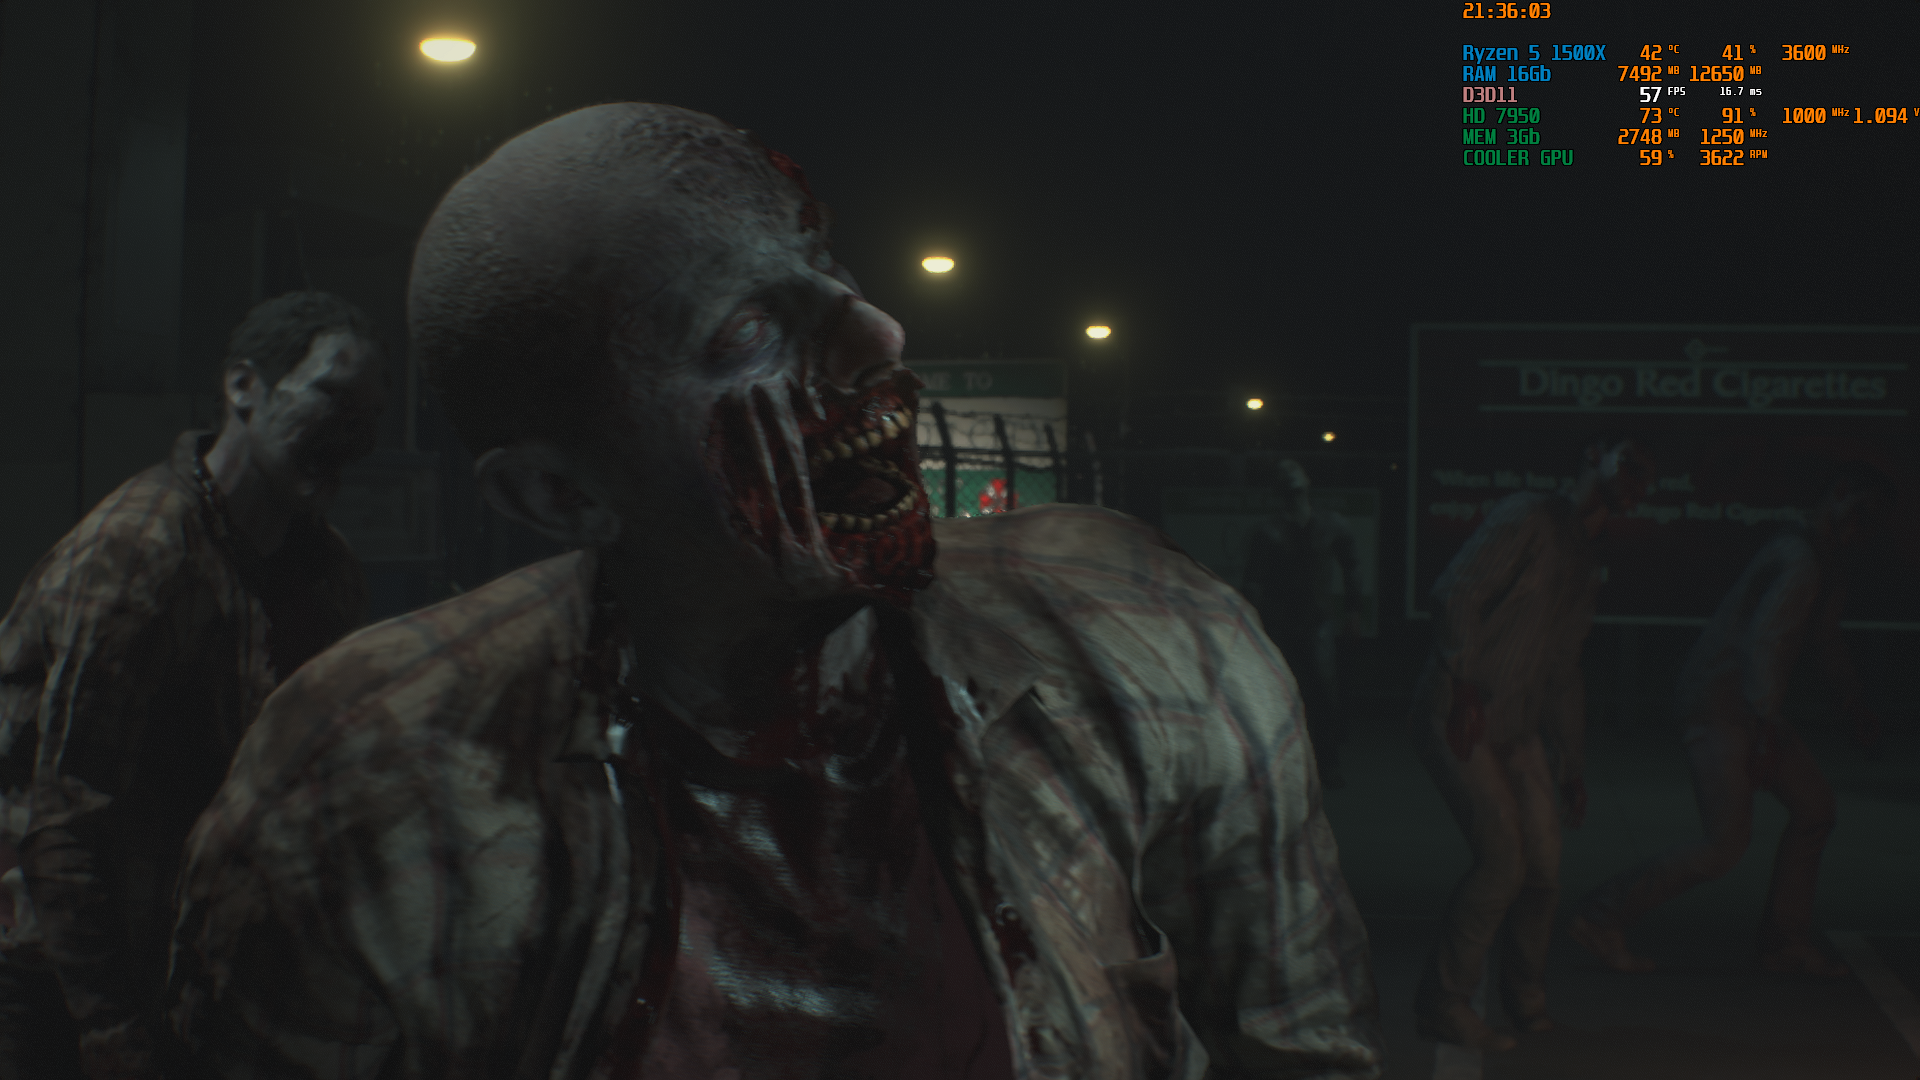 re2_2019_02_14_21_36_04_678.png - Resident Evil 2